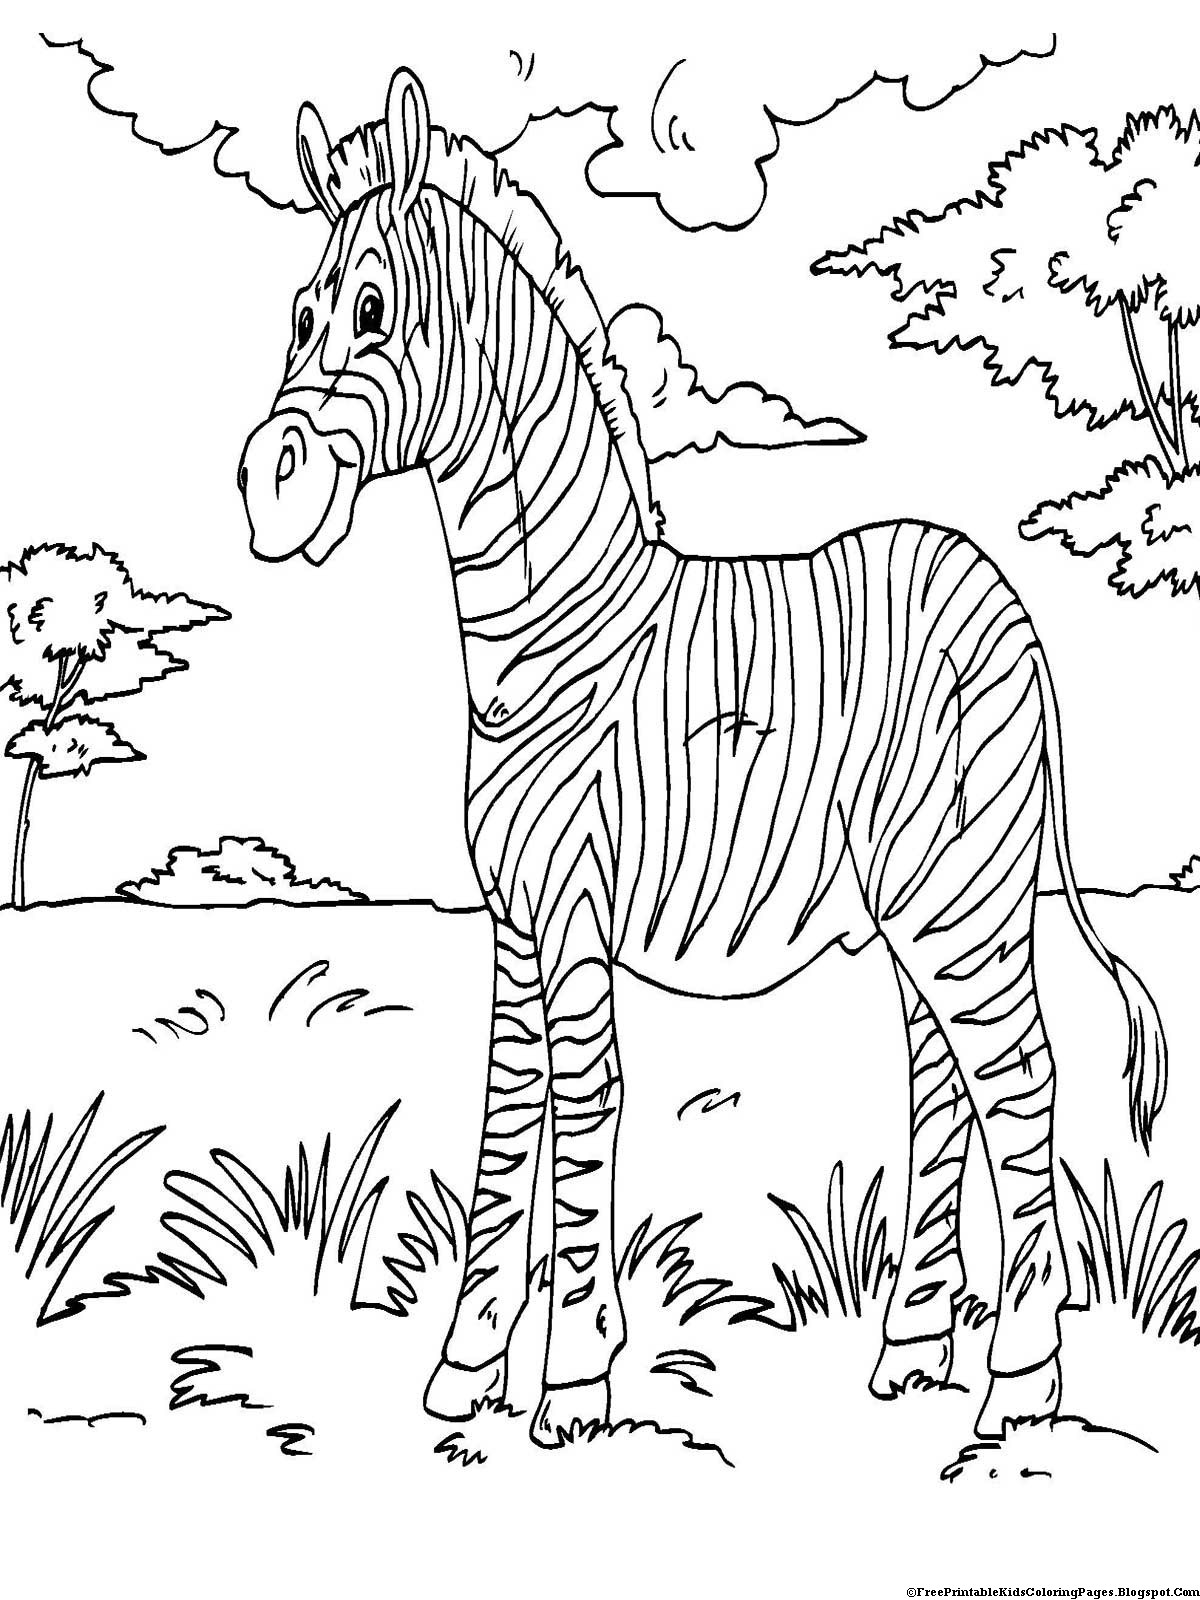 zebra coloring pages free printable zebra coloring pages free printable kids coloring pages printable free pages coloring zebra